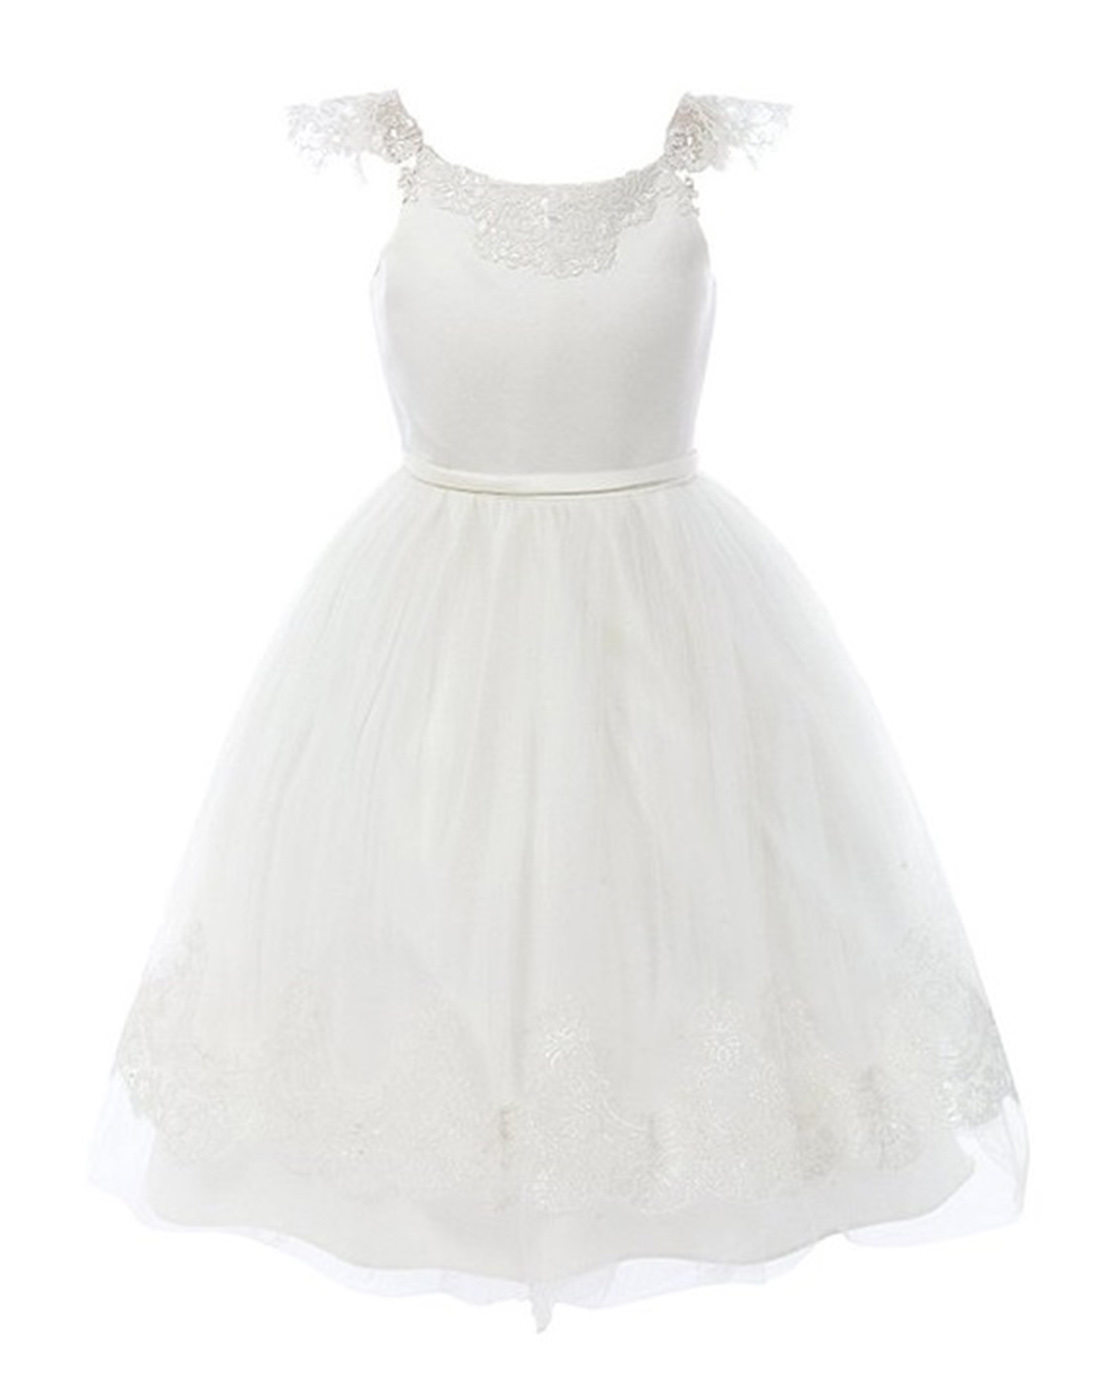 White Embroidered Lace And Mesh Tulle Flower Girl Dress Party Dress